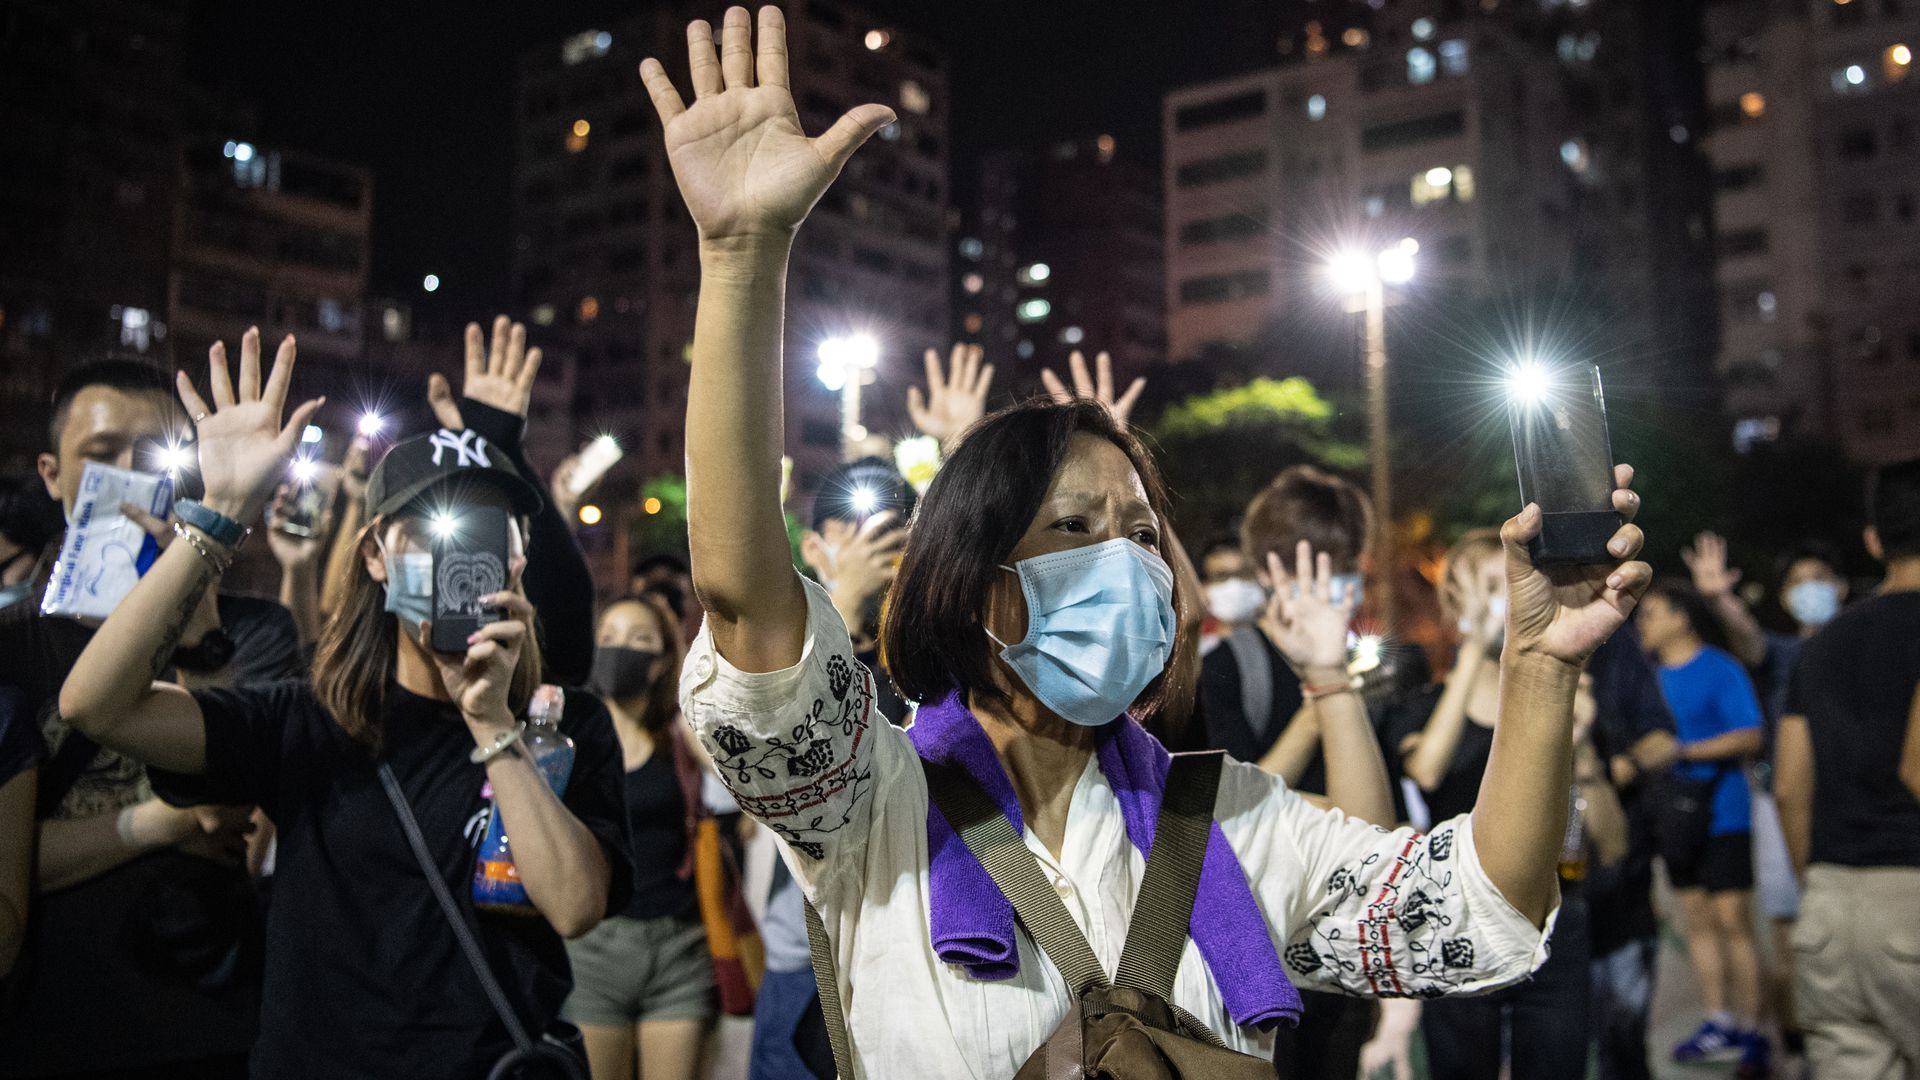 A woman protesting in Hong Kong